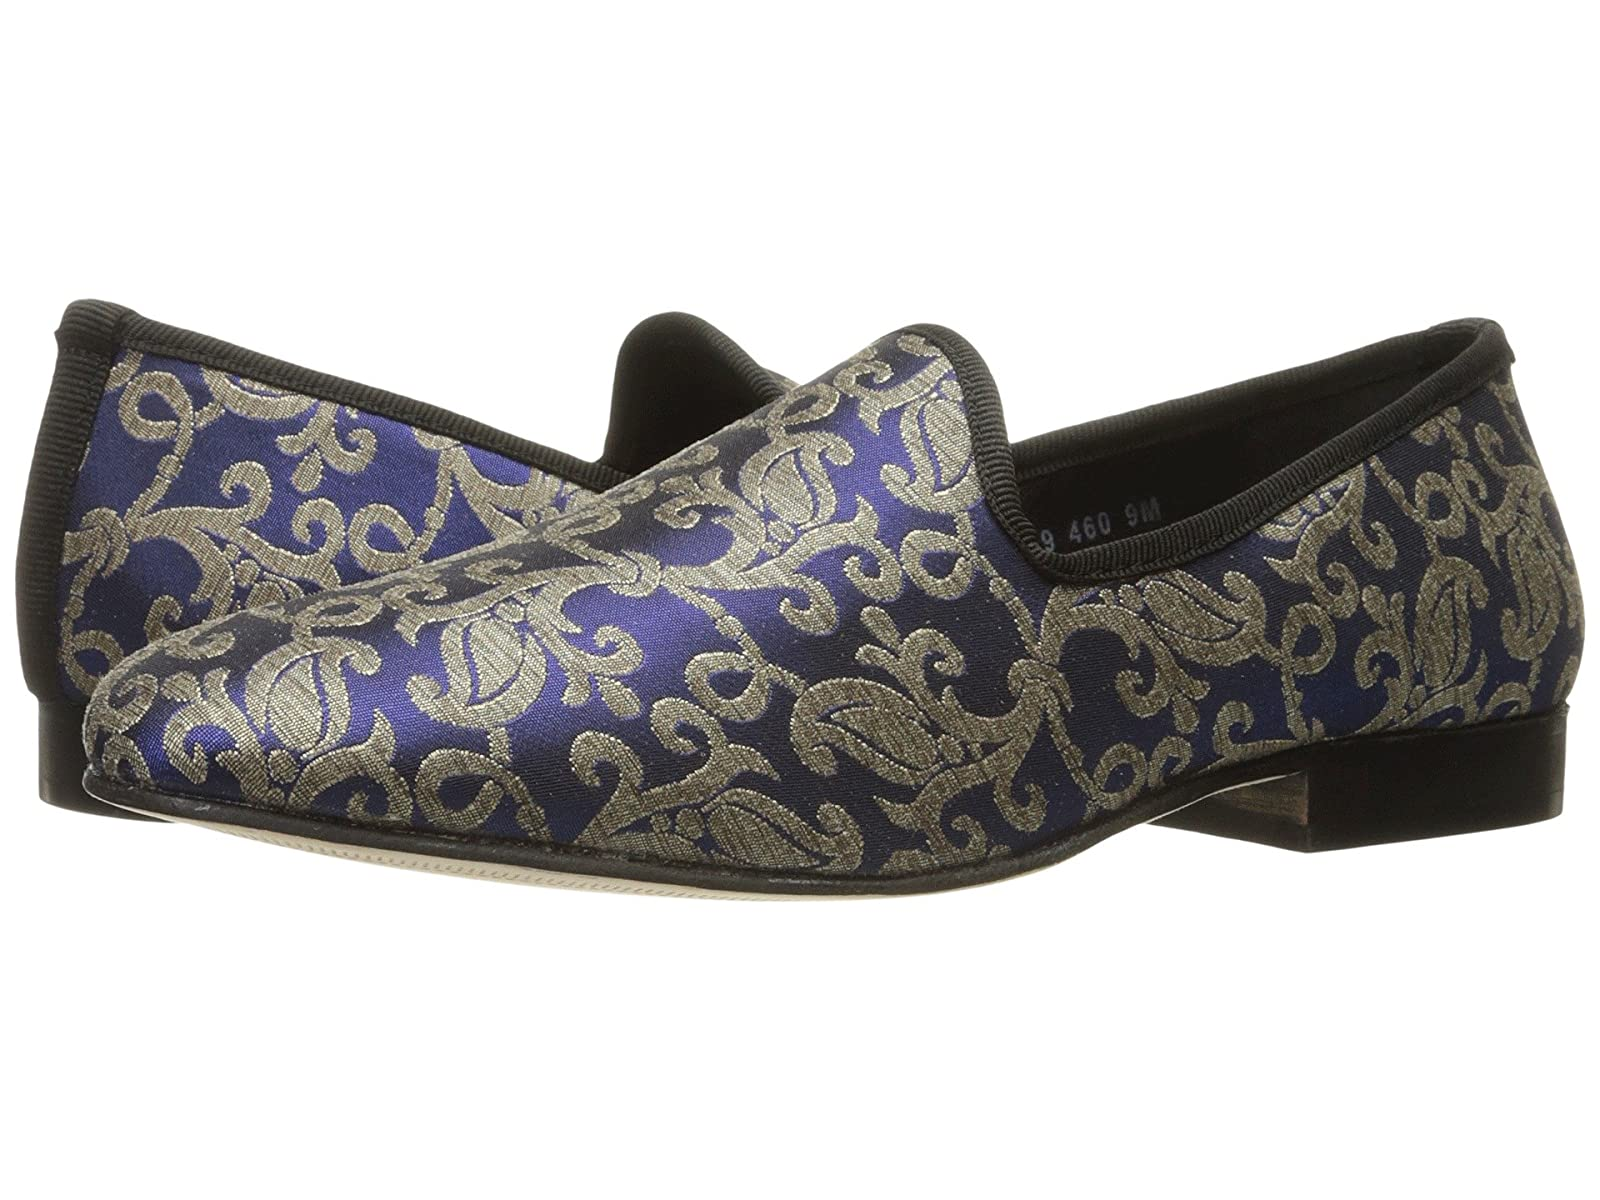 Stacy Adams VeniceAtmospheric grades have affordable shoes